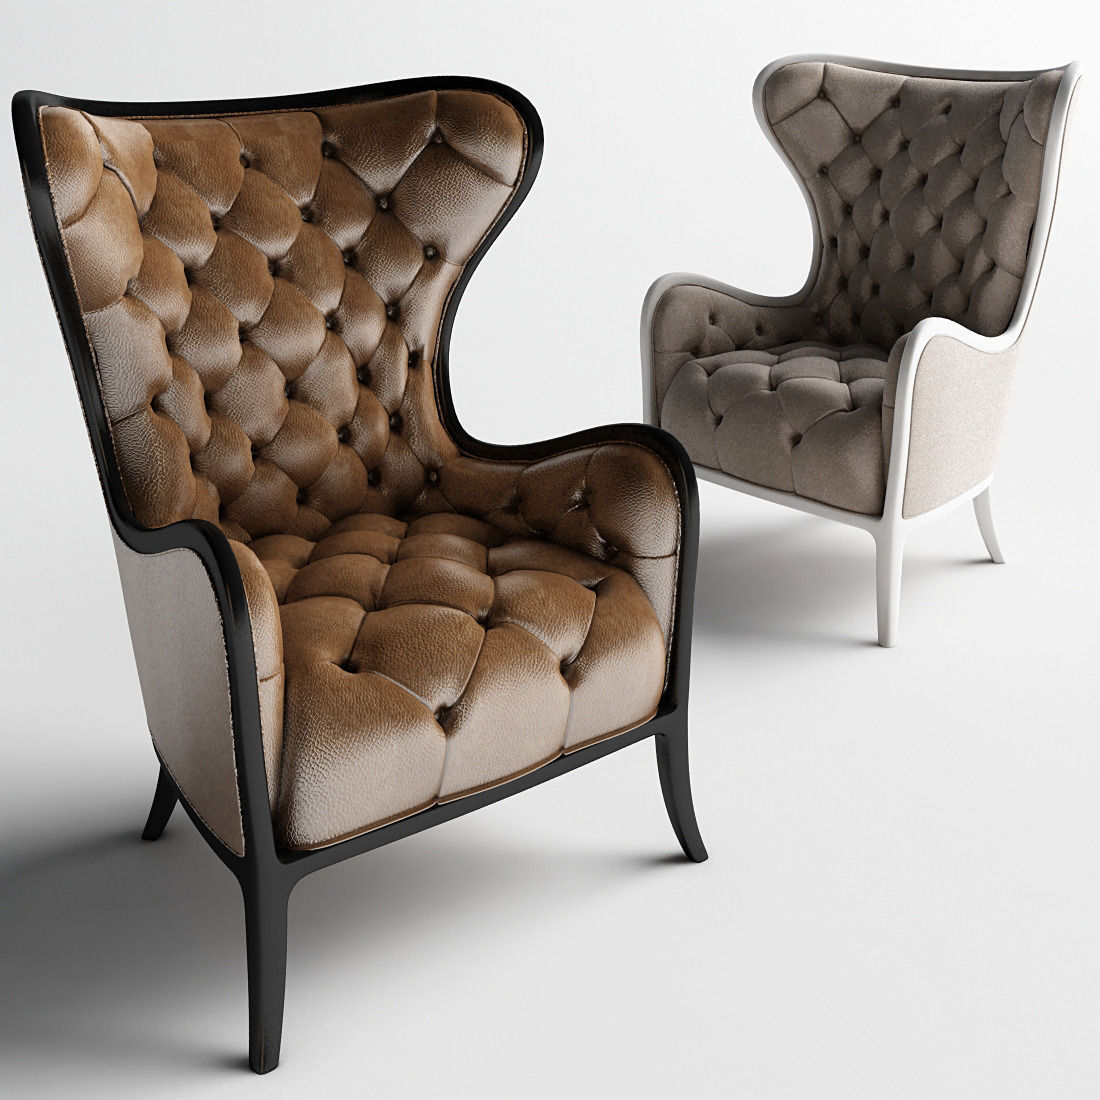 Medea prestige  Tufted Chair and Armchairs